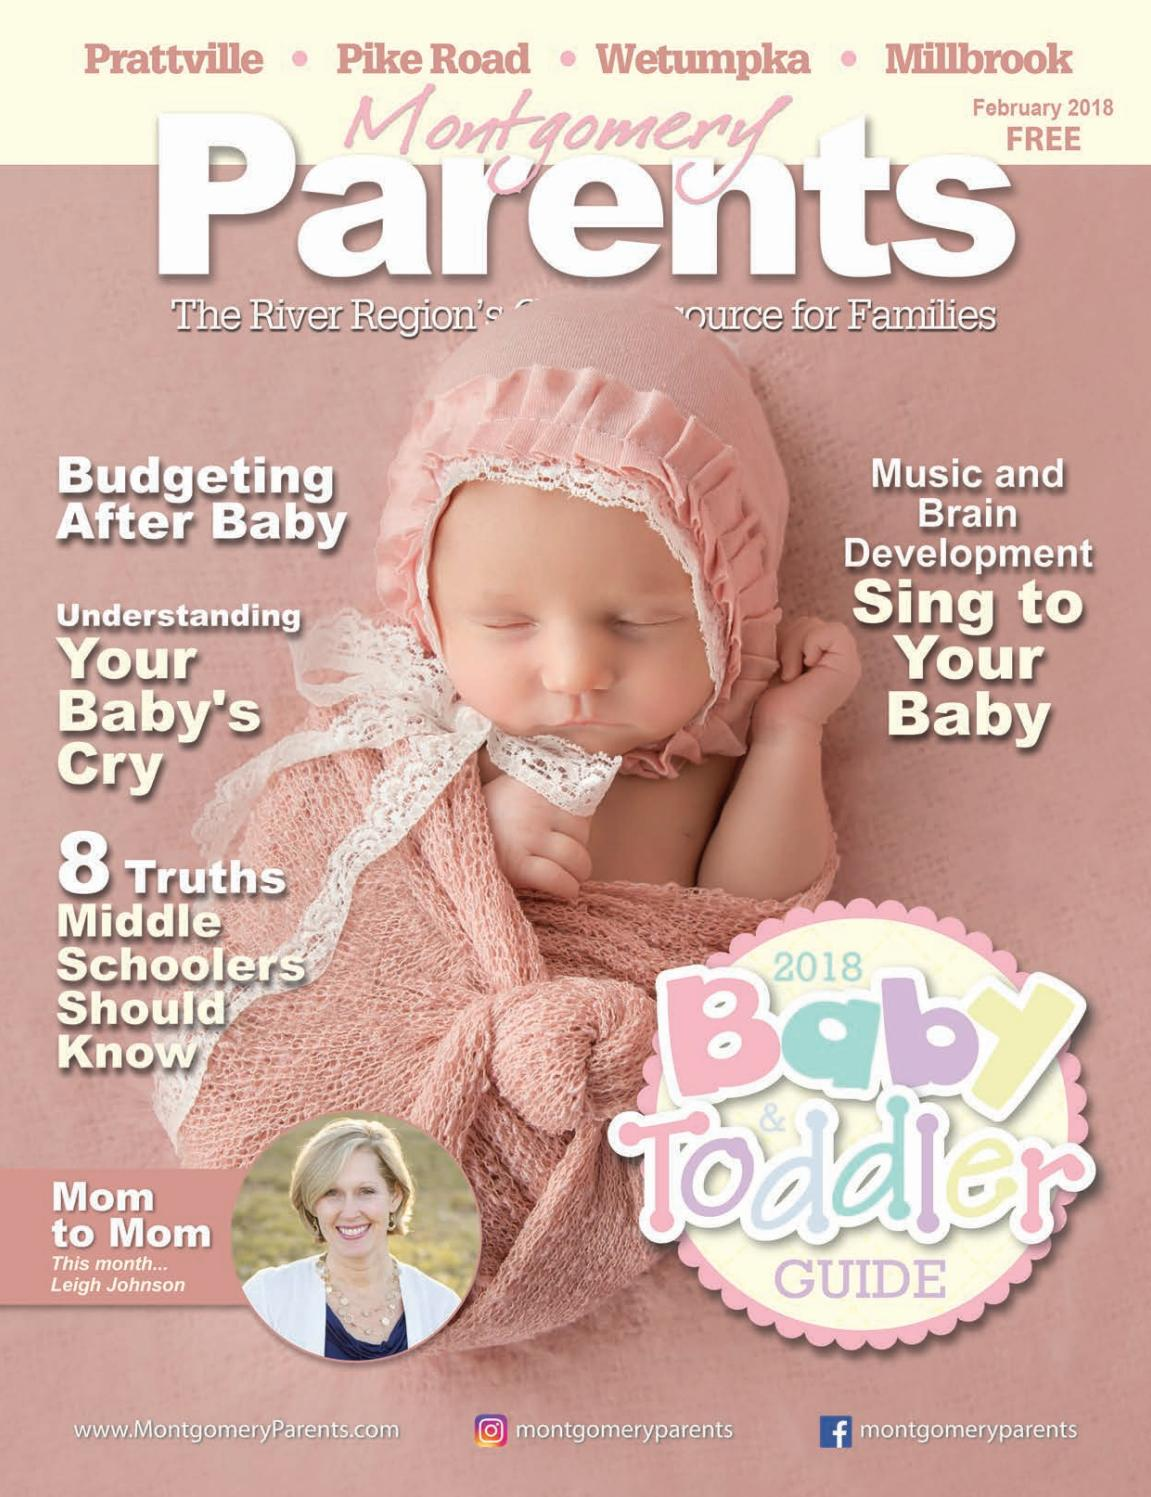 f9c1d86aa Montgomery Parents February 2018 by KeepSharing - issuu